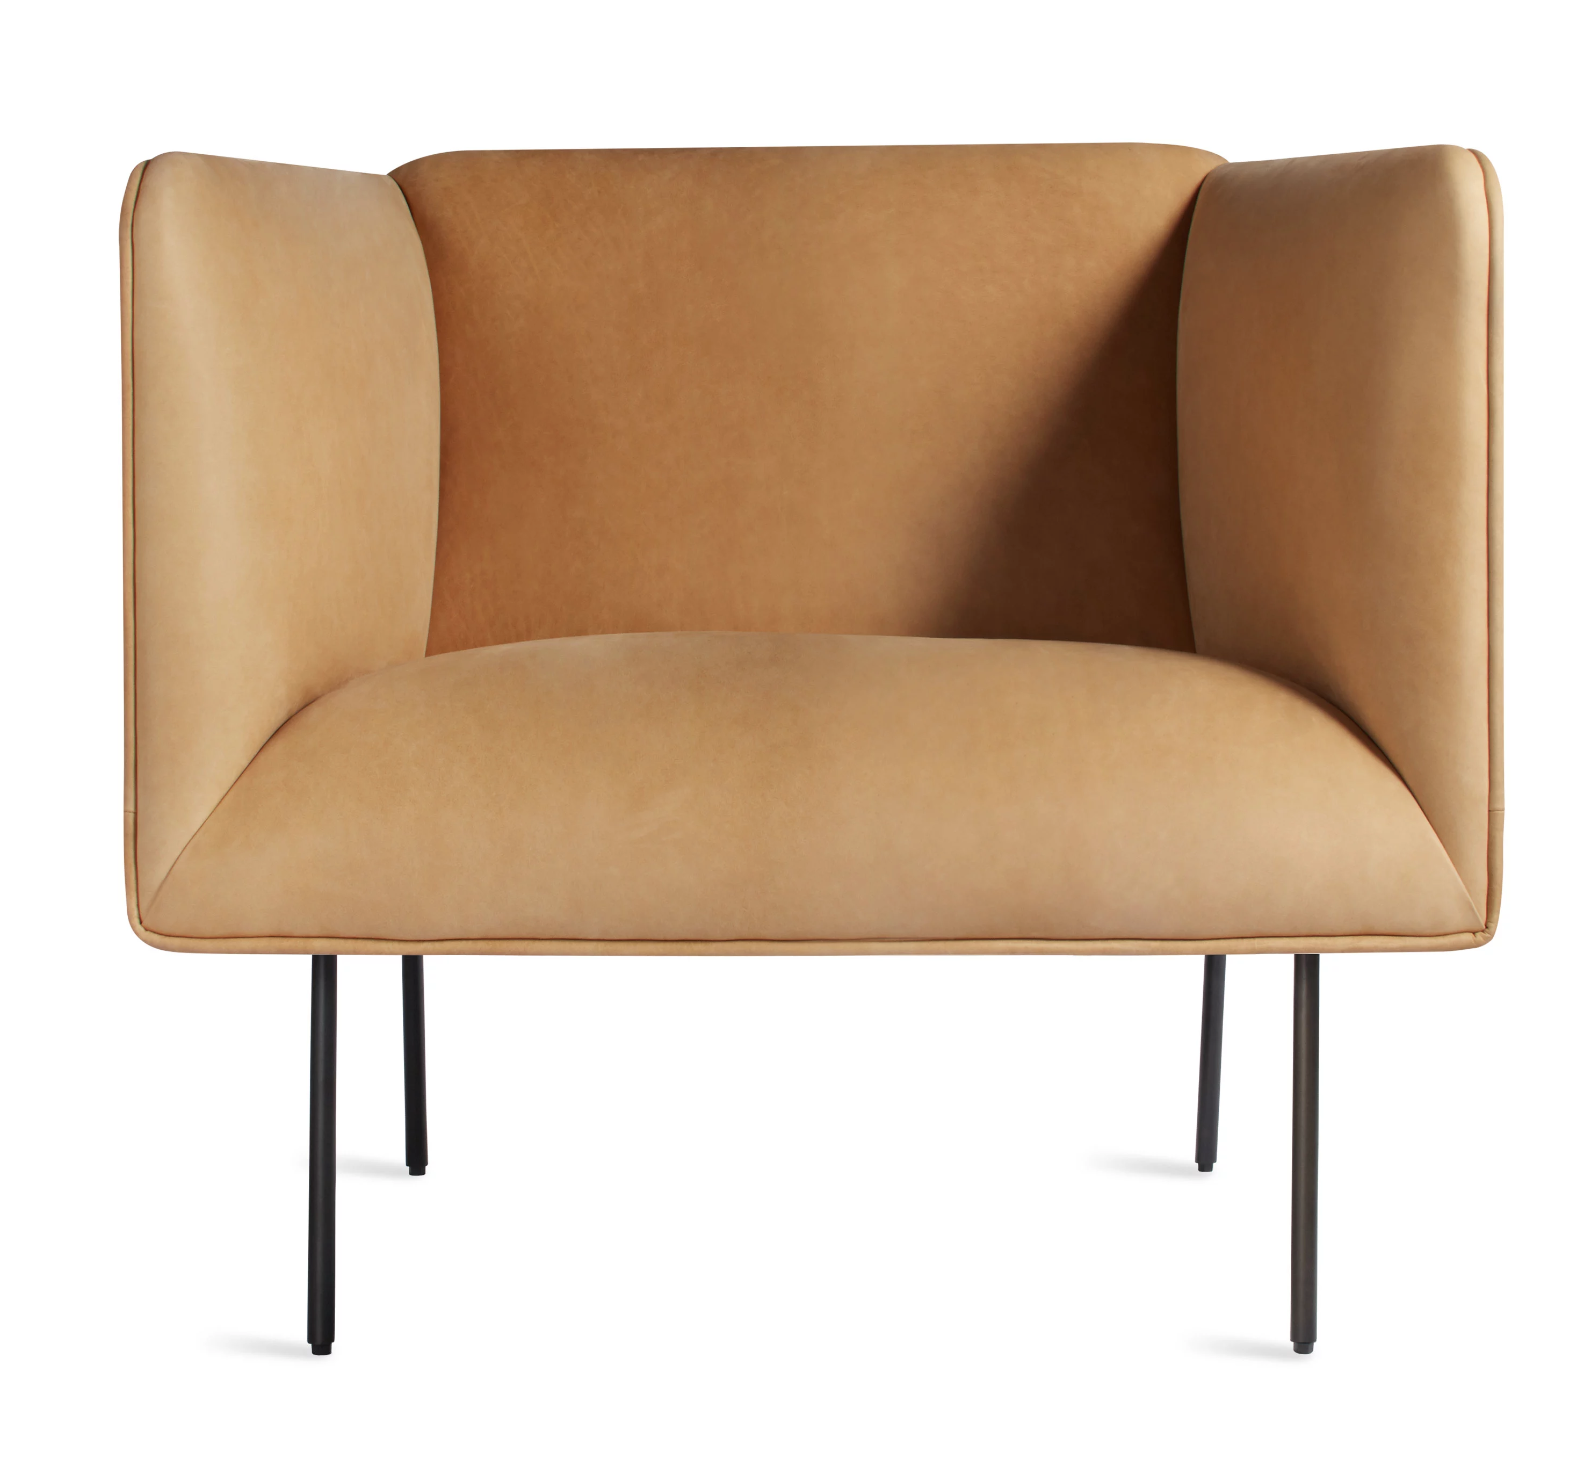 Incredible 24 Modern Armchairs That Will Upgrade Your Space Ibusinesslaw Wood Chair Design Ideas Ibusinesslaworg